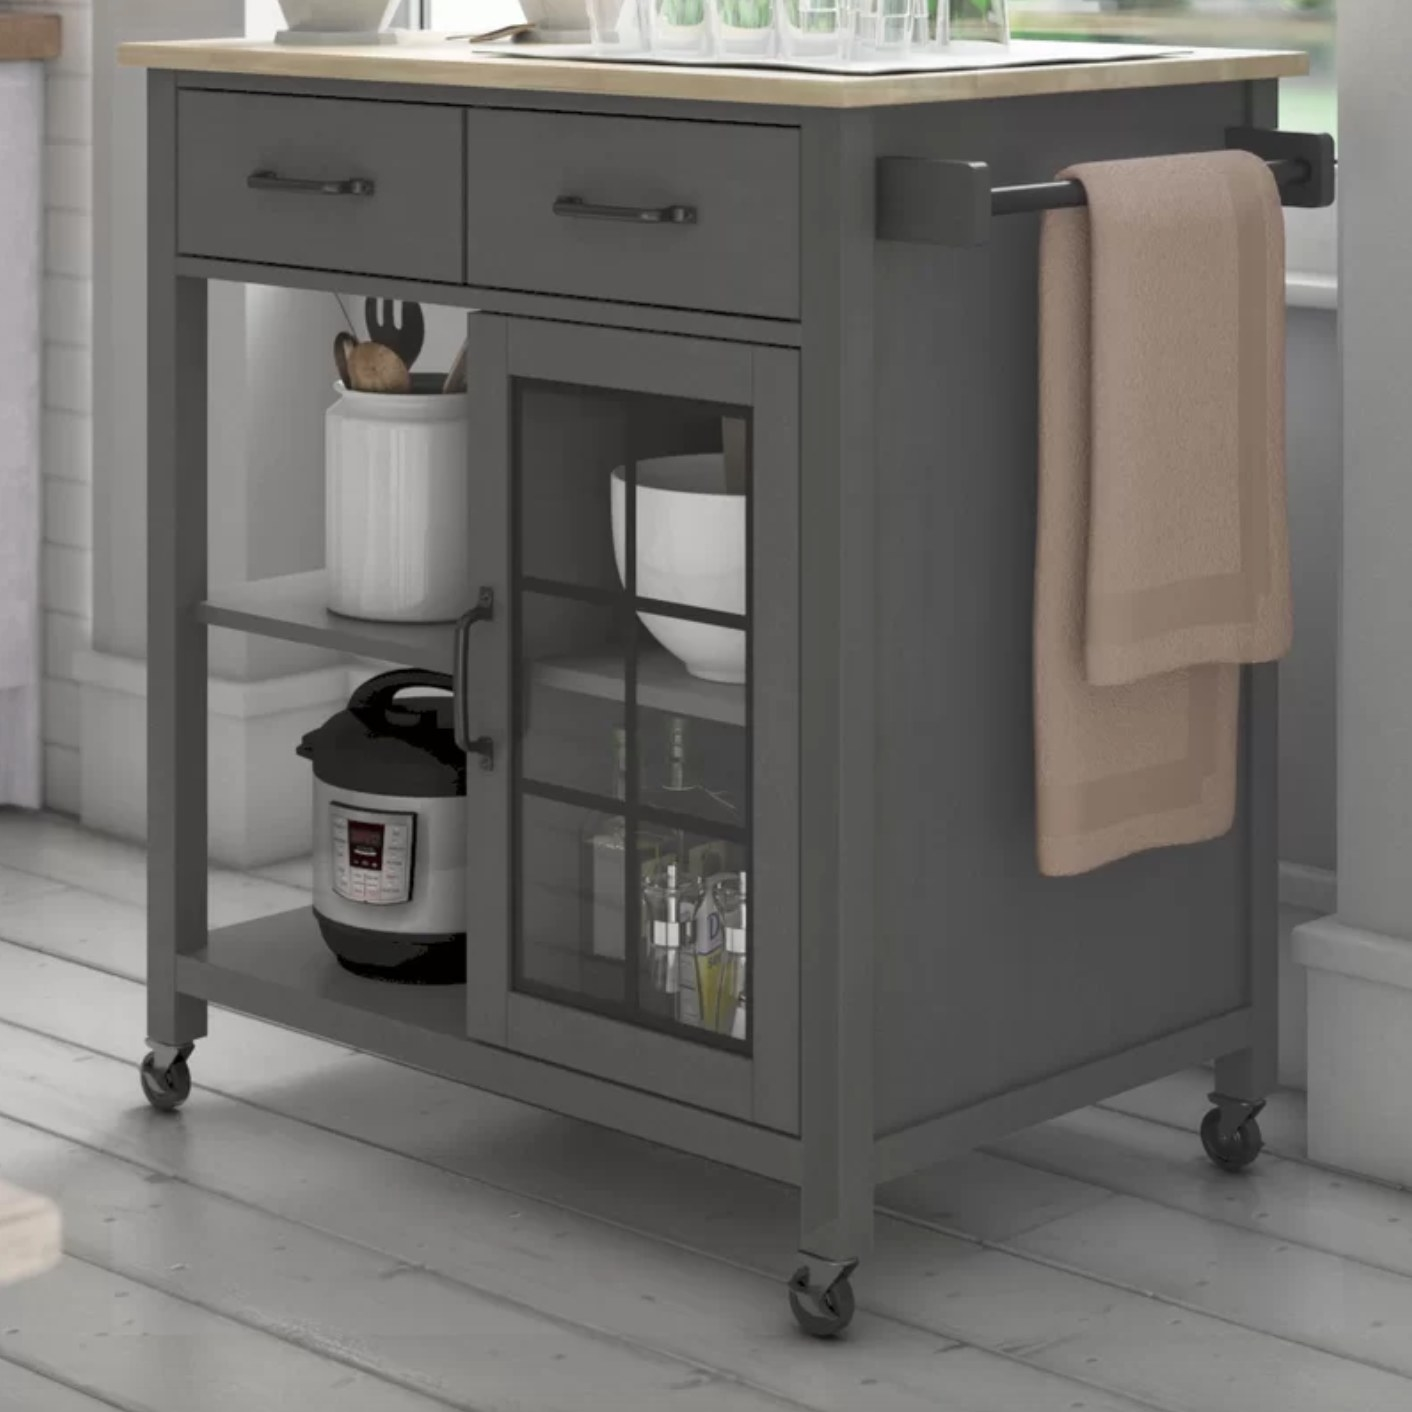 The kitchen cart in gray